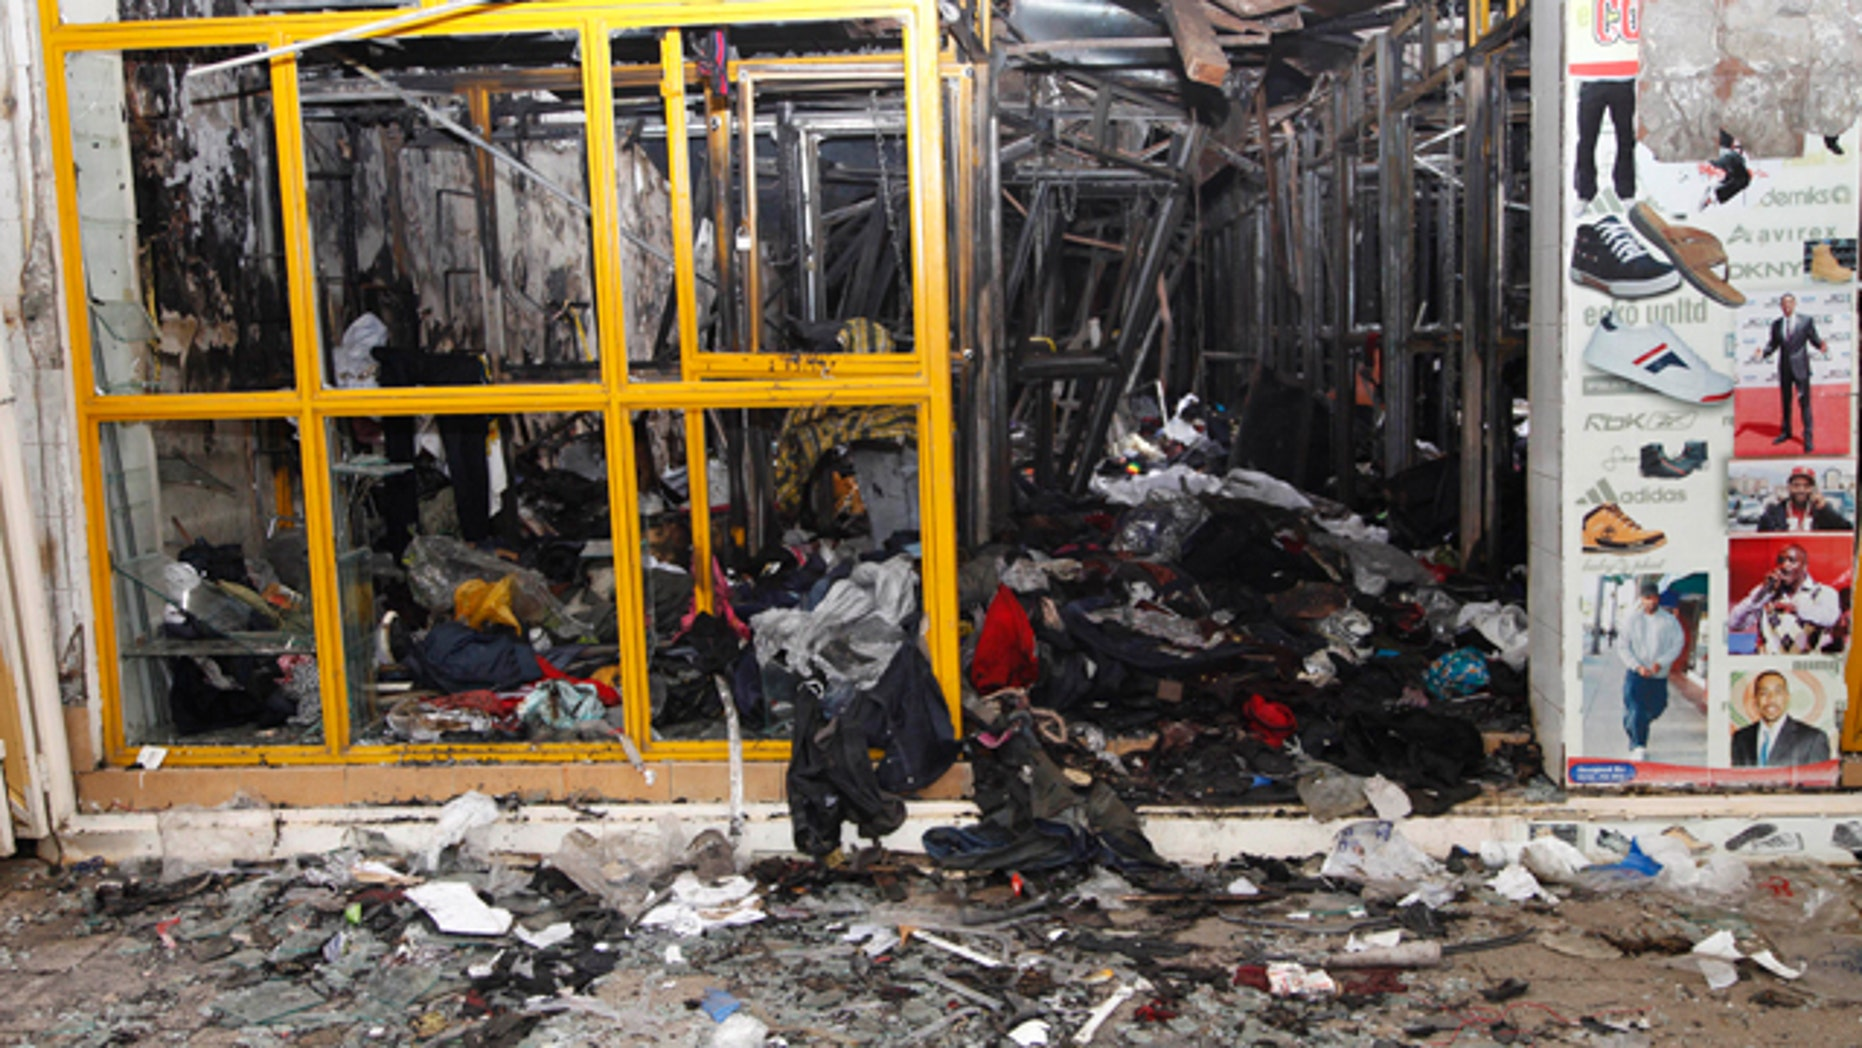 May 29: Destroyed shop after an explosion in downtown Nairobi. The explosion ripped through a building, injuring at least 33 people, including a woman who blamed the blast on a 'bearded man' who left behind a bag shortly before the detonation.